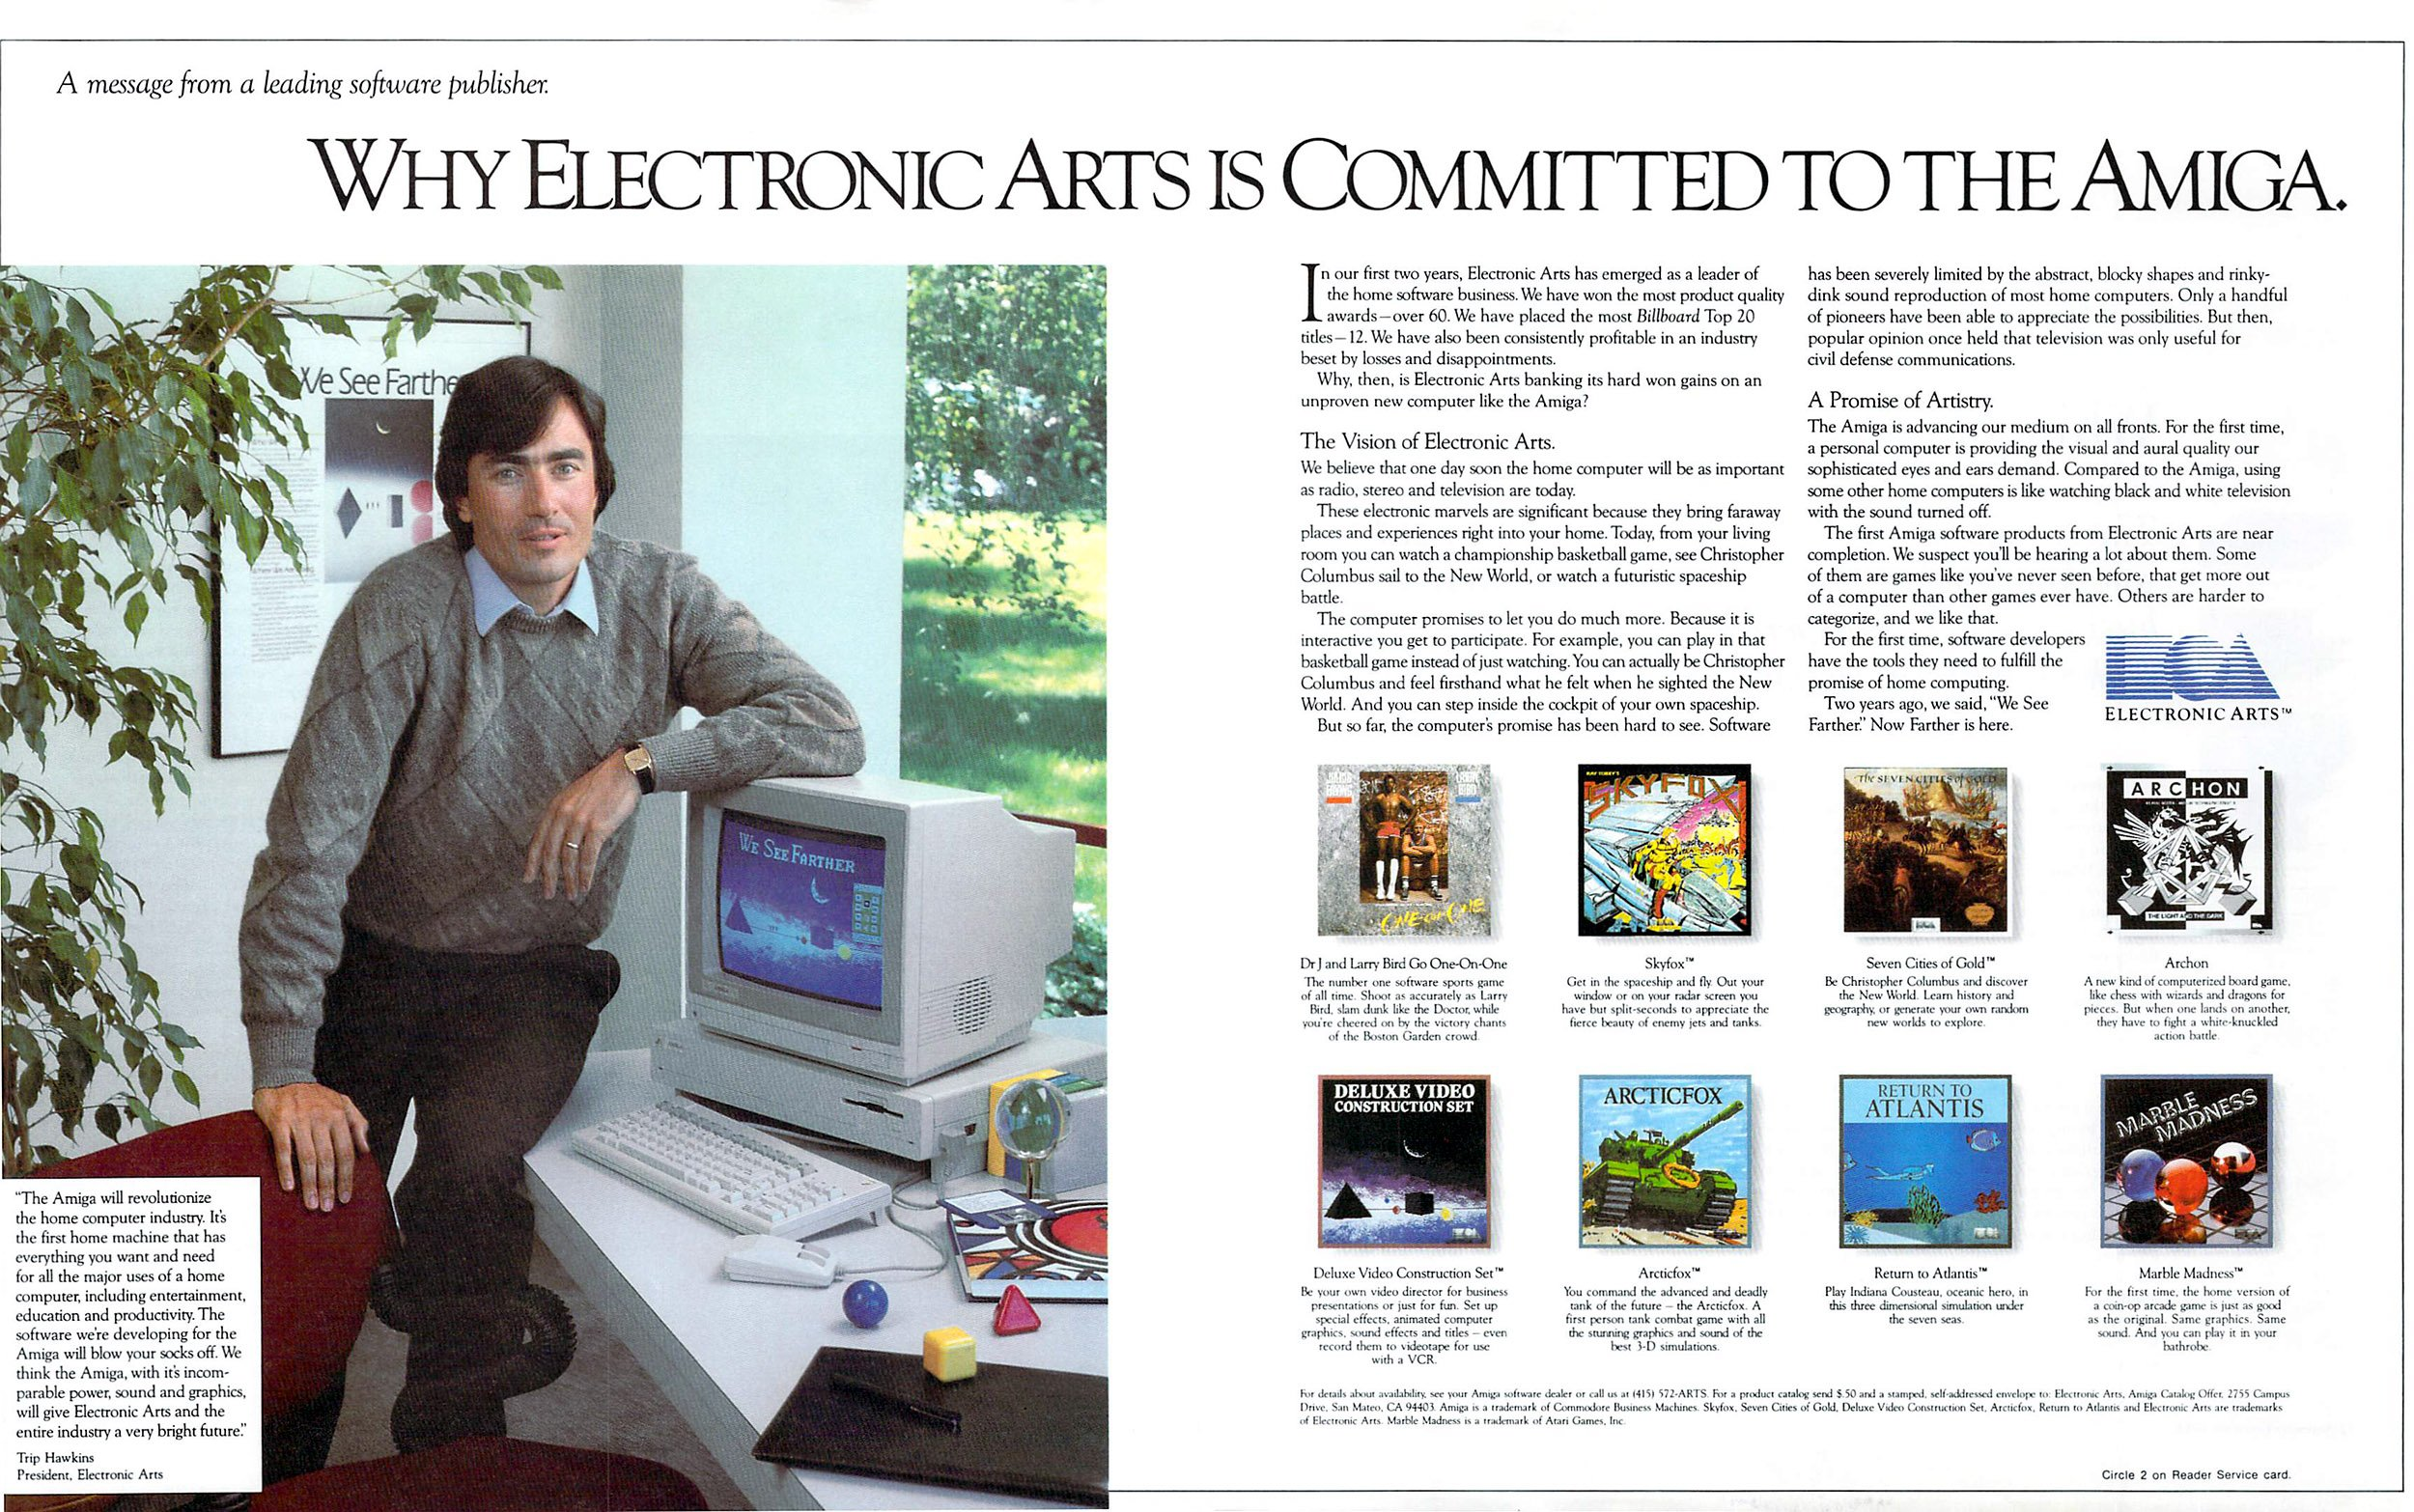 Electronic Arts 1985 (Dr.J and Larry Bird Go One-On-One, Skyfox, Seven Cities of Gold, Archon, Arctic Fox, Return To Atlantis, Marble Madness)